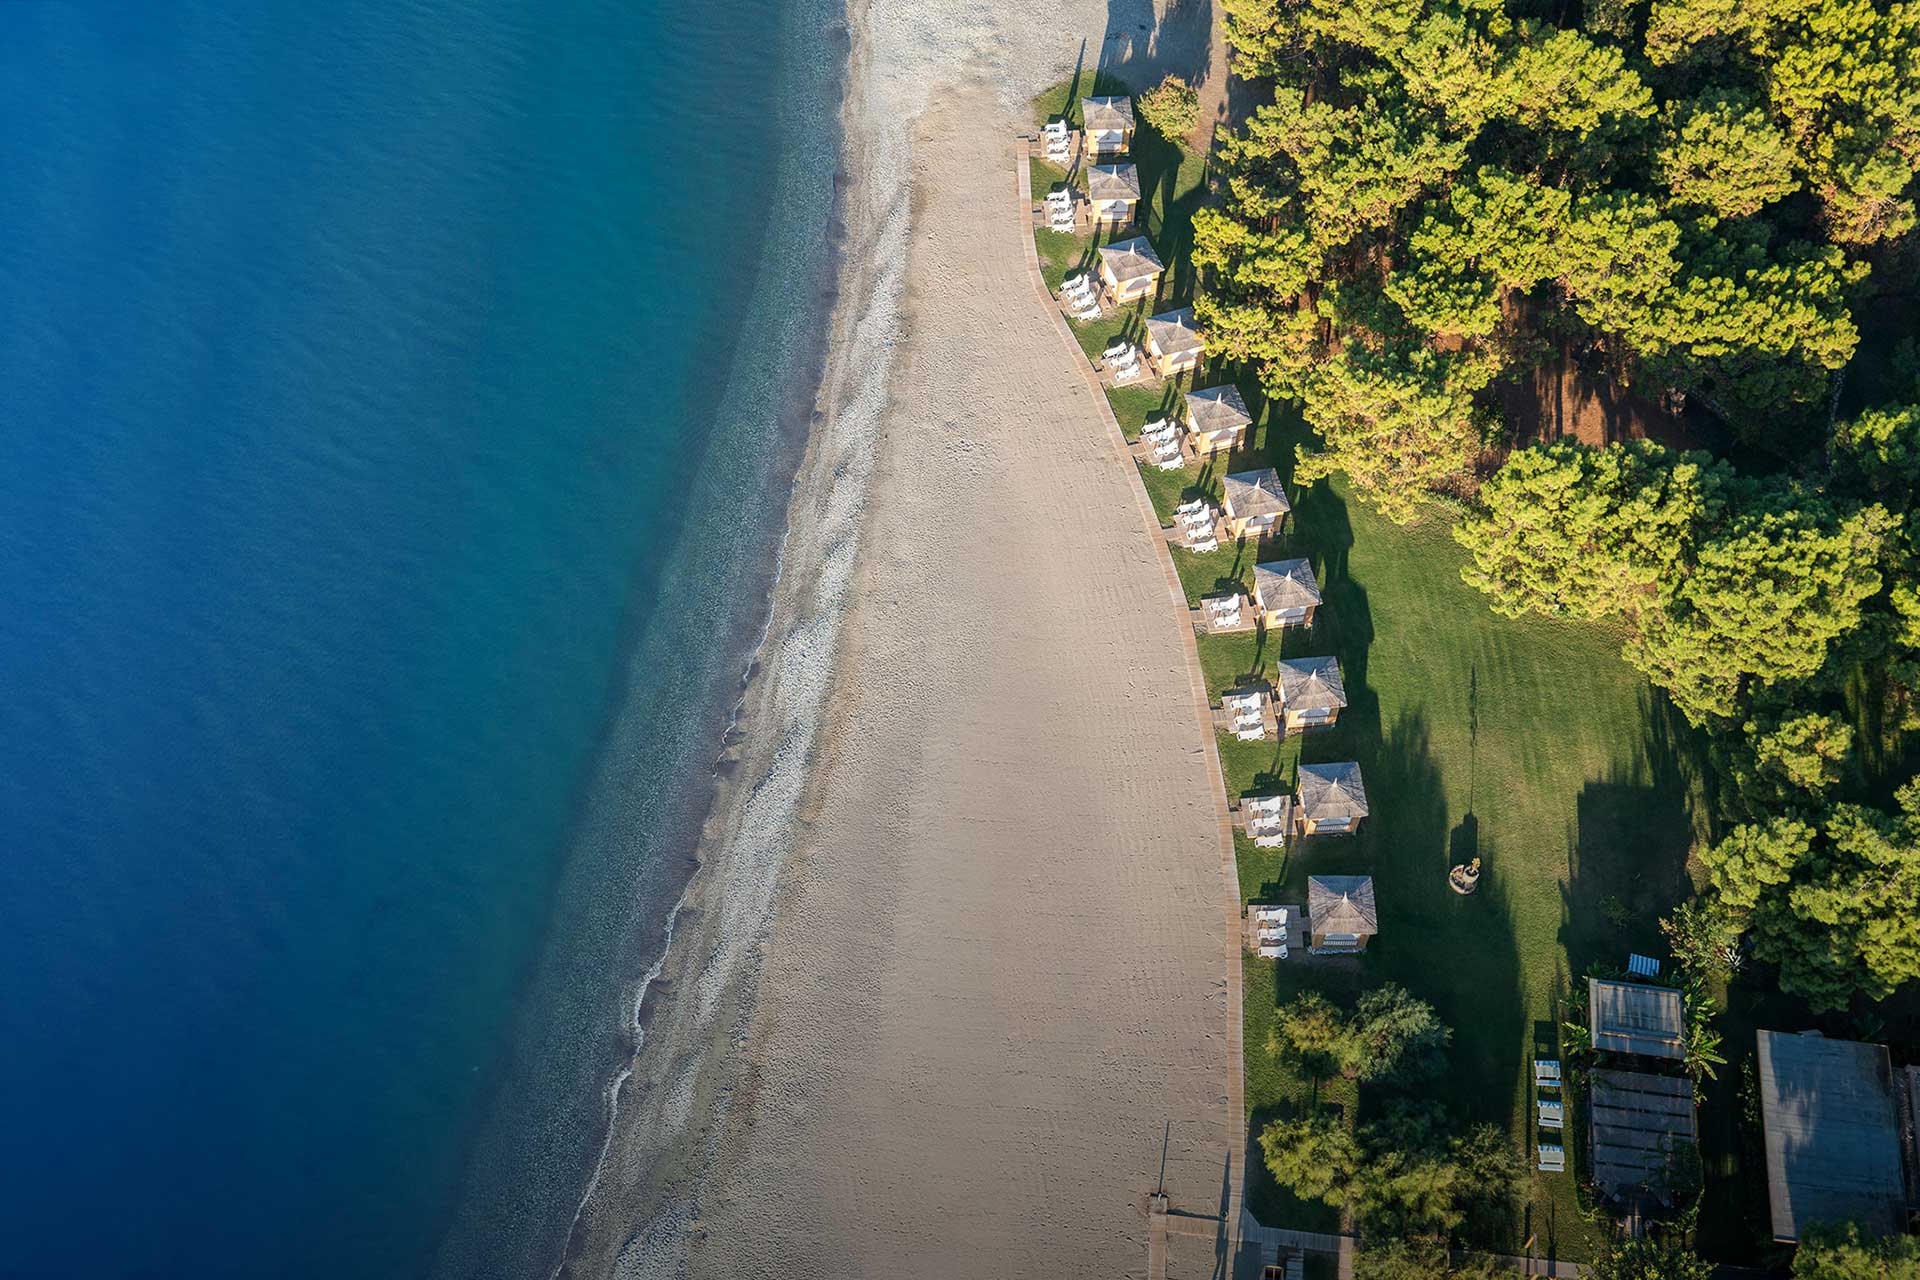 STARTED TO OPEN ITS HOTELS AS OF JUNE 5, BARUT HOTELS COMPLETED OPENING OF ITS HOTELS